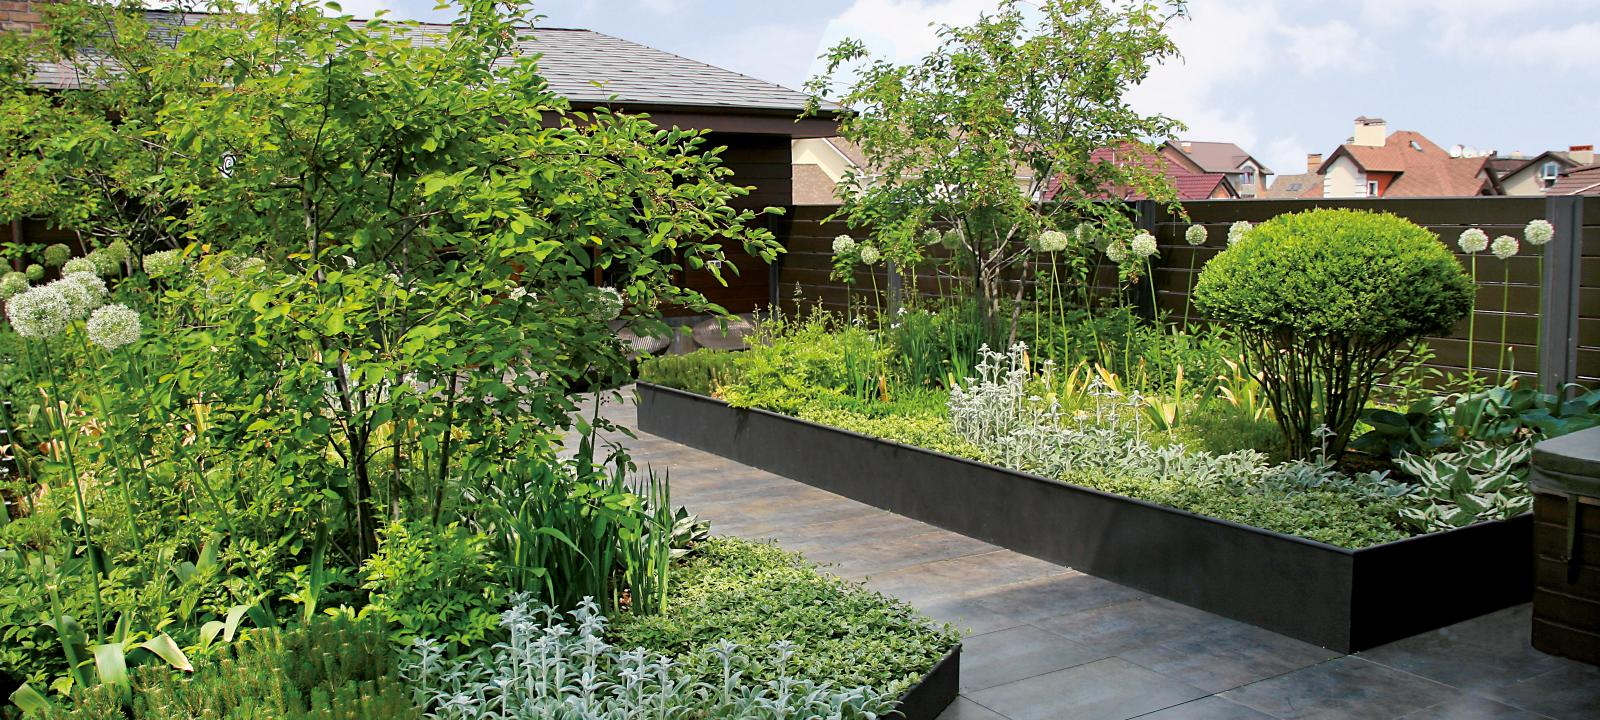 Roof garden with plant beds